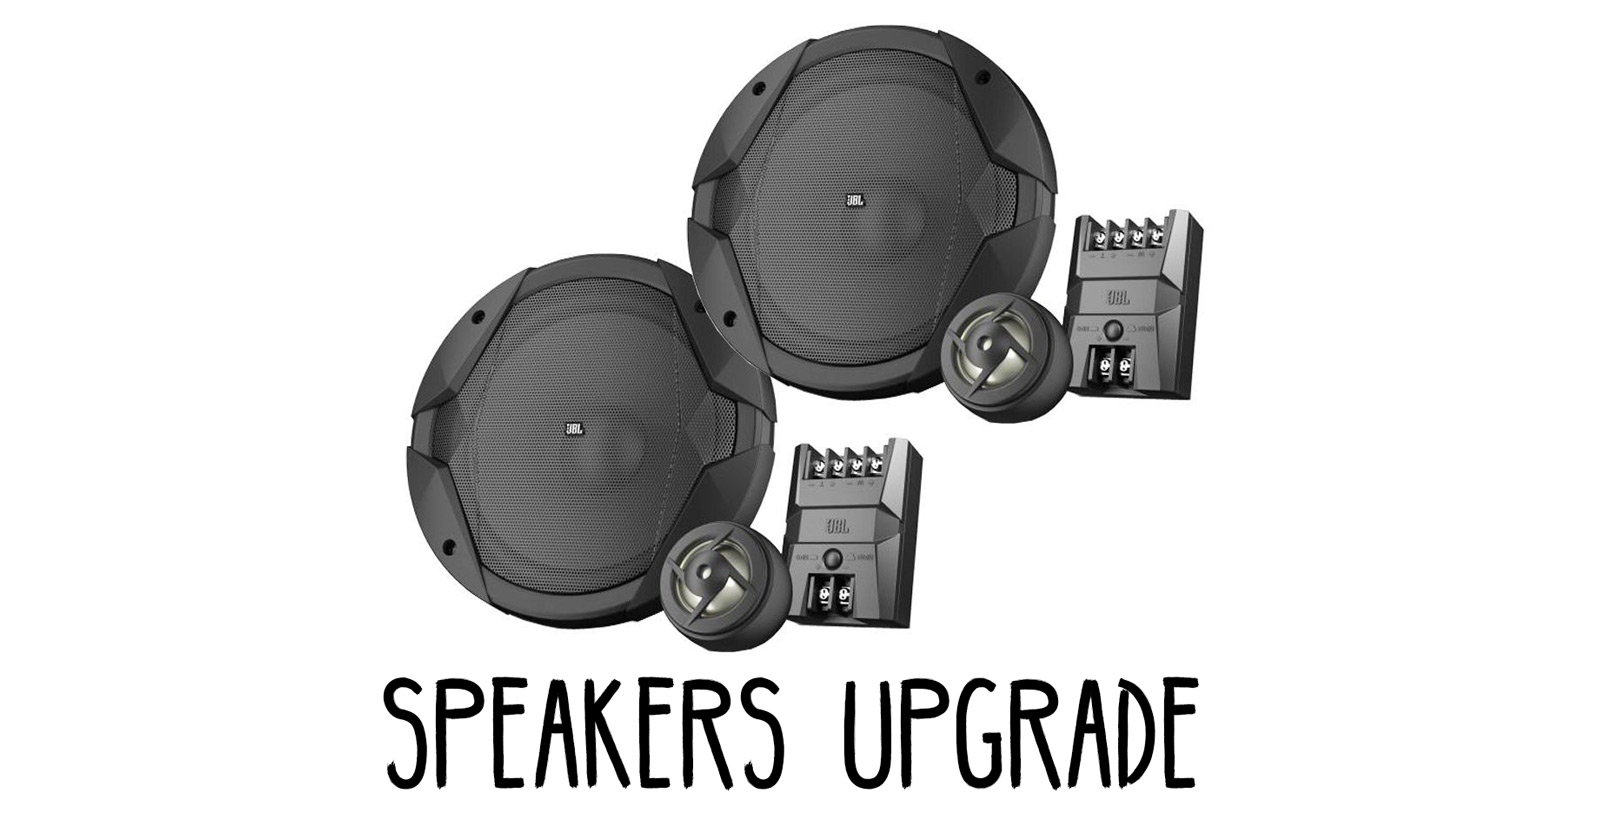 Speakers-Upgrade-Heading--Website-1000px